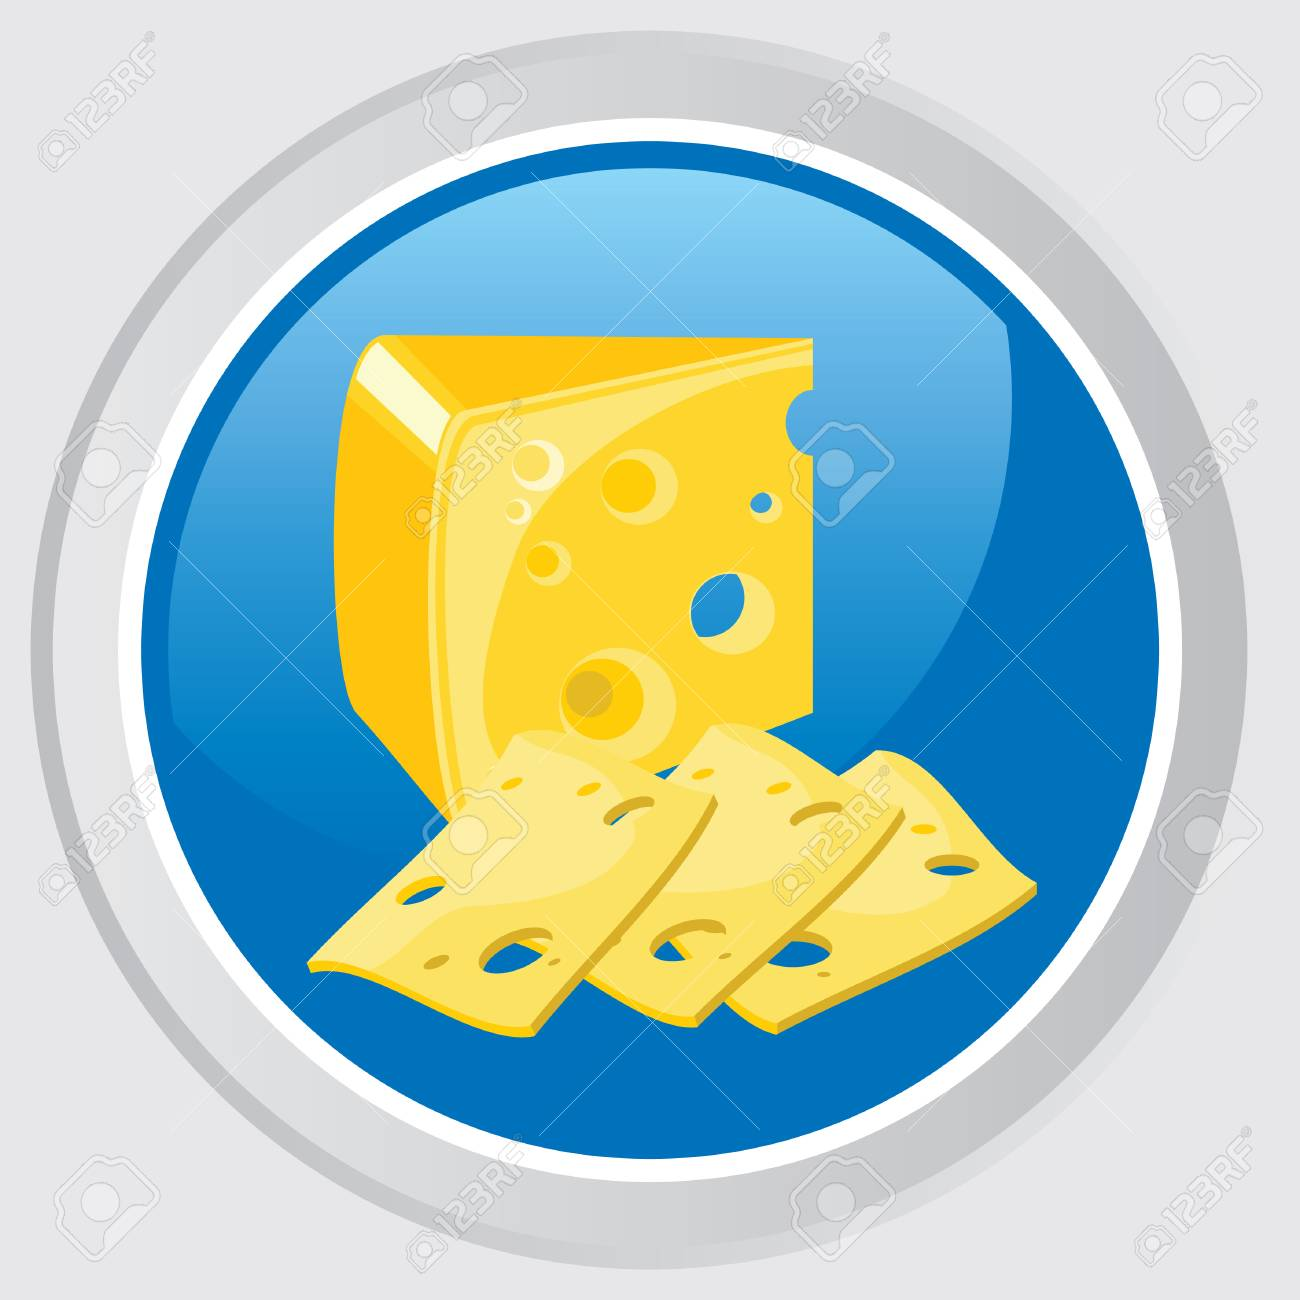 icon. Button with the head cheese and cheese slices Stock Vector - 7584226